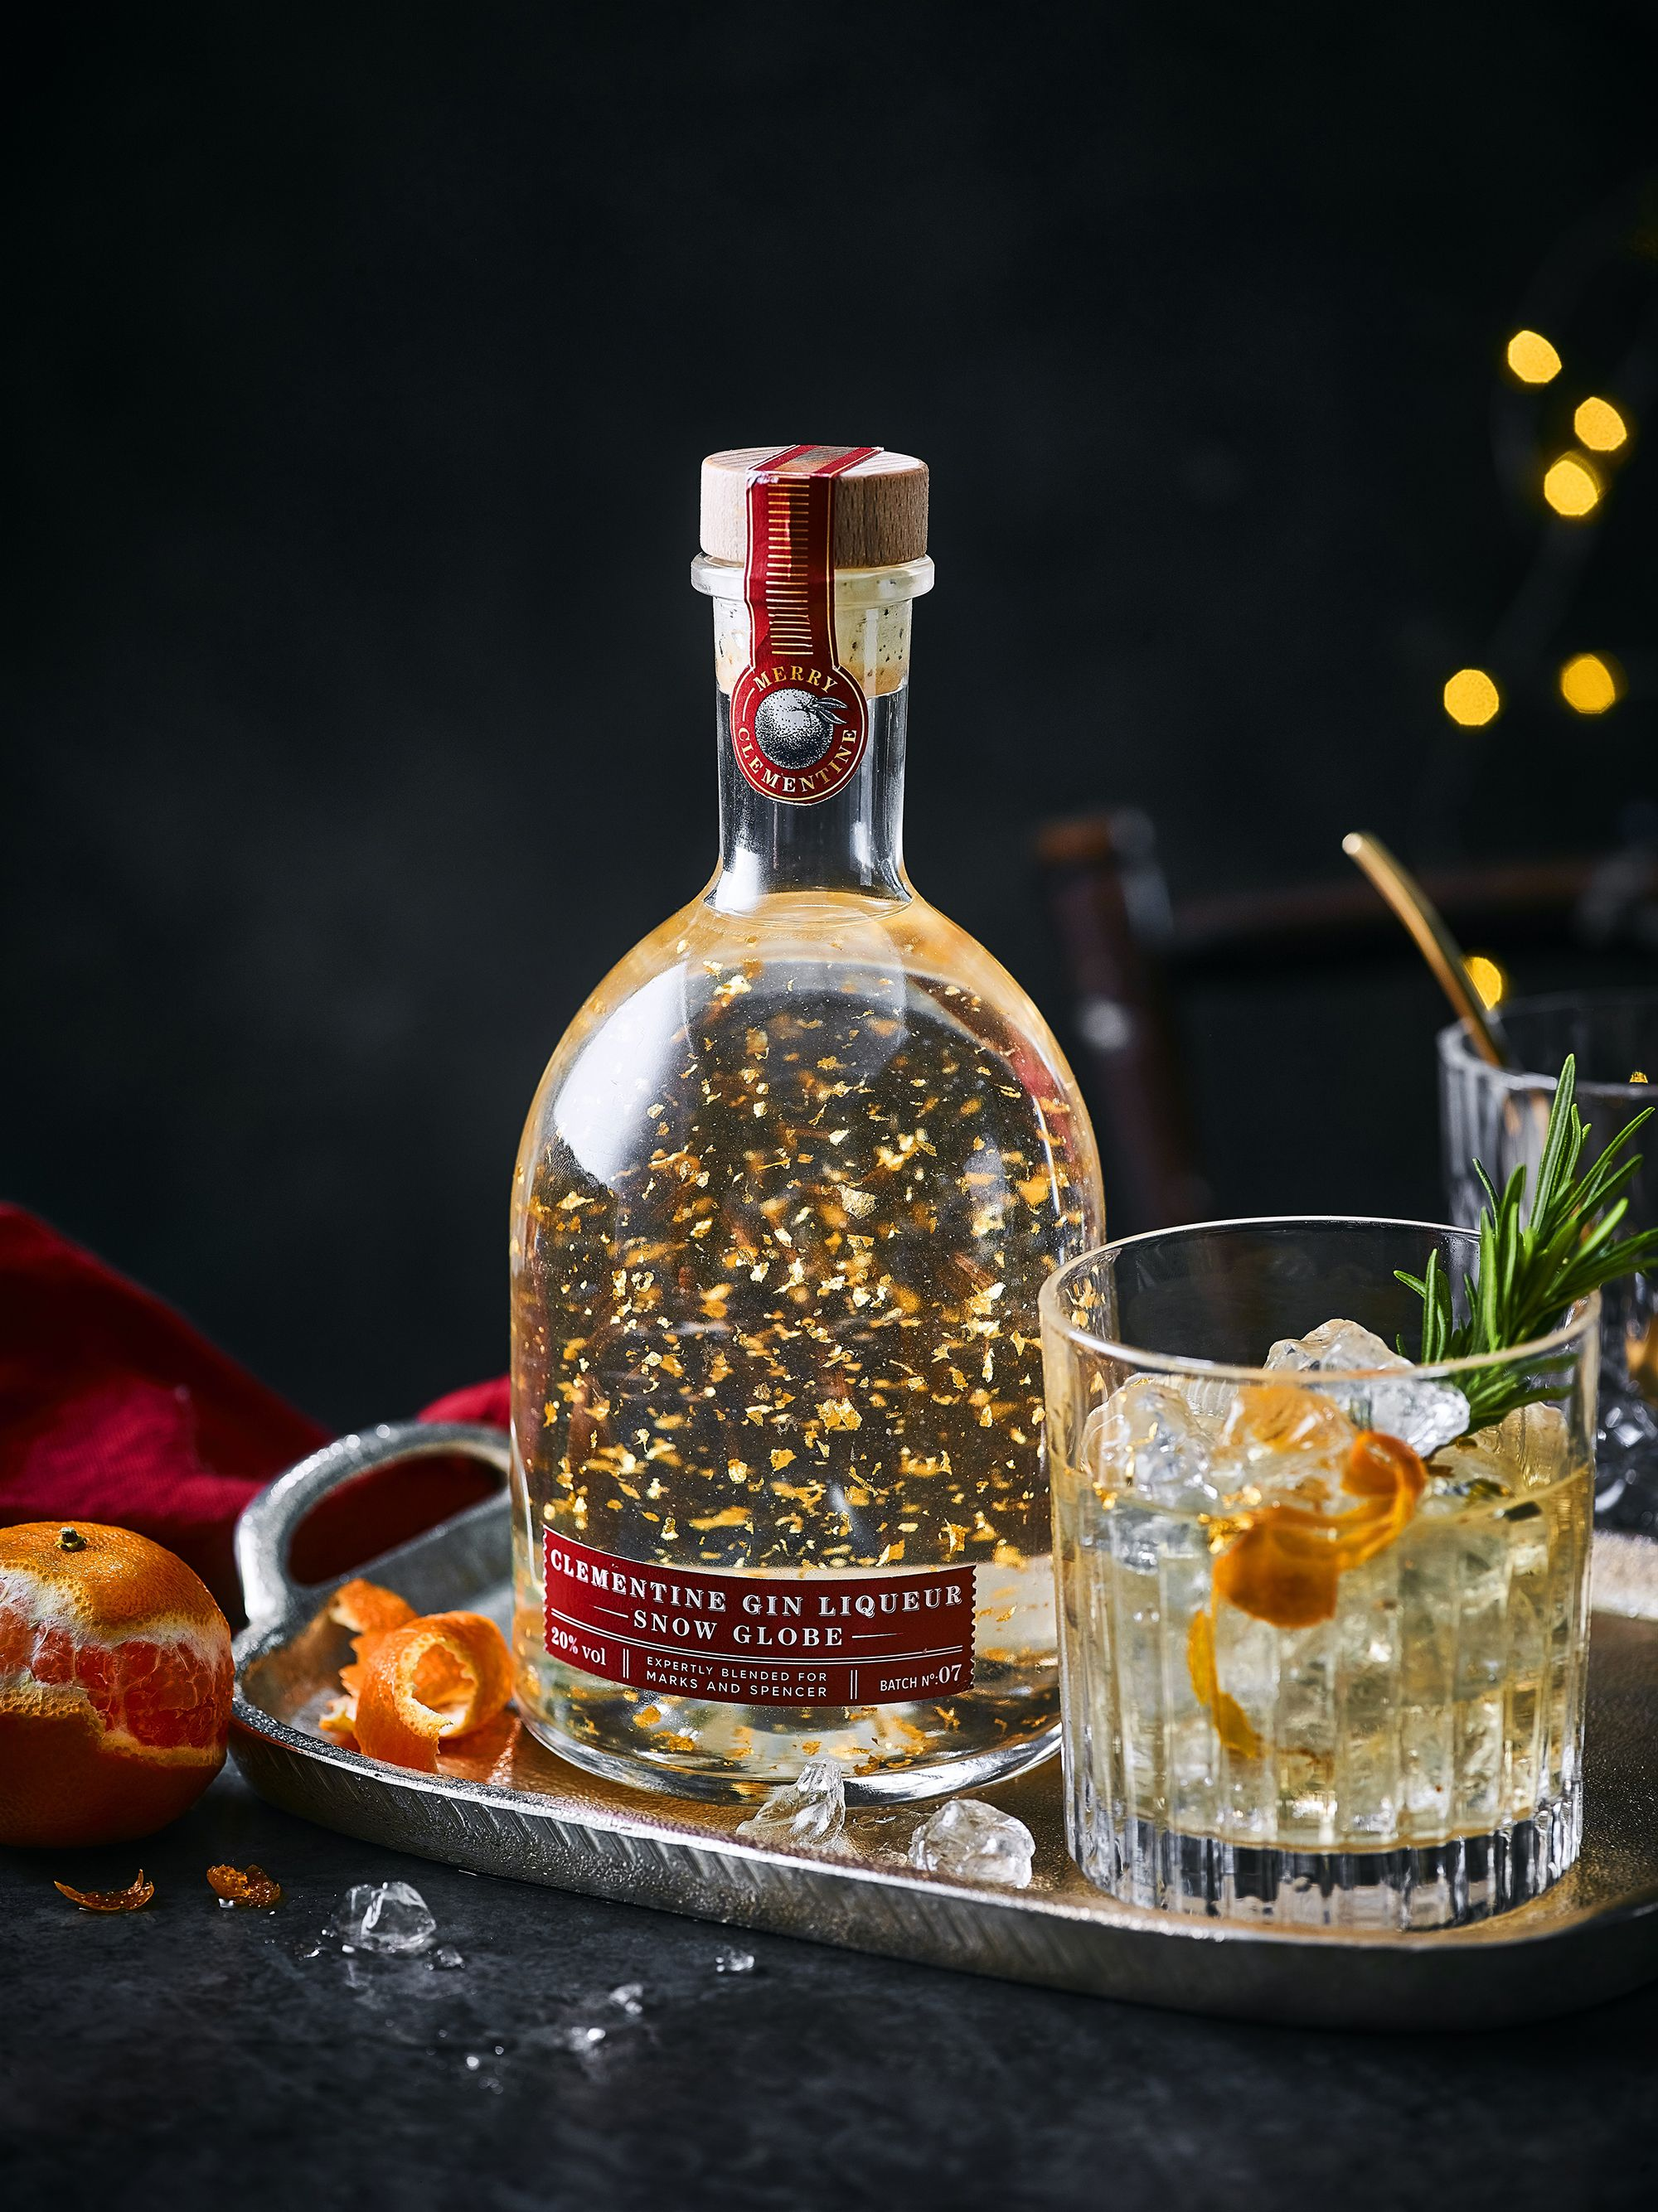 This Marks & Spencer gin snow globe is the ultimate Christmas gift for gin lovers